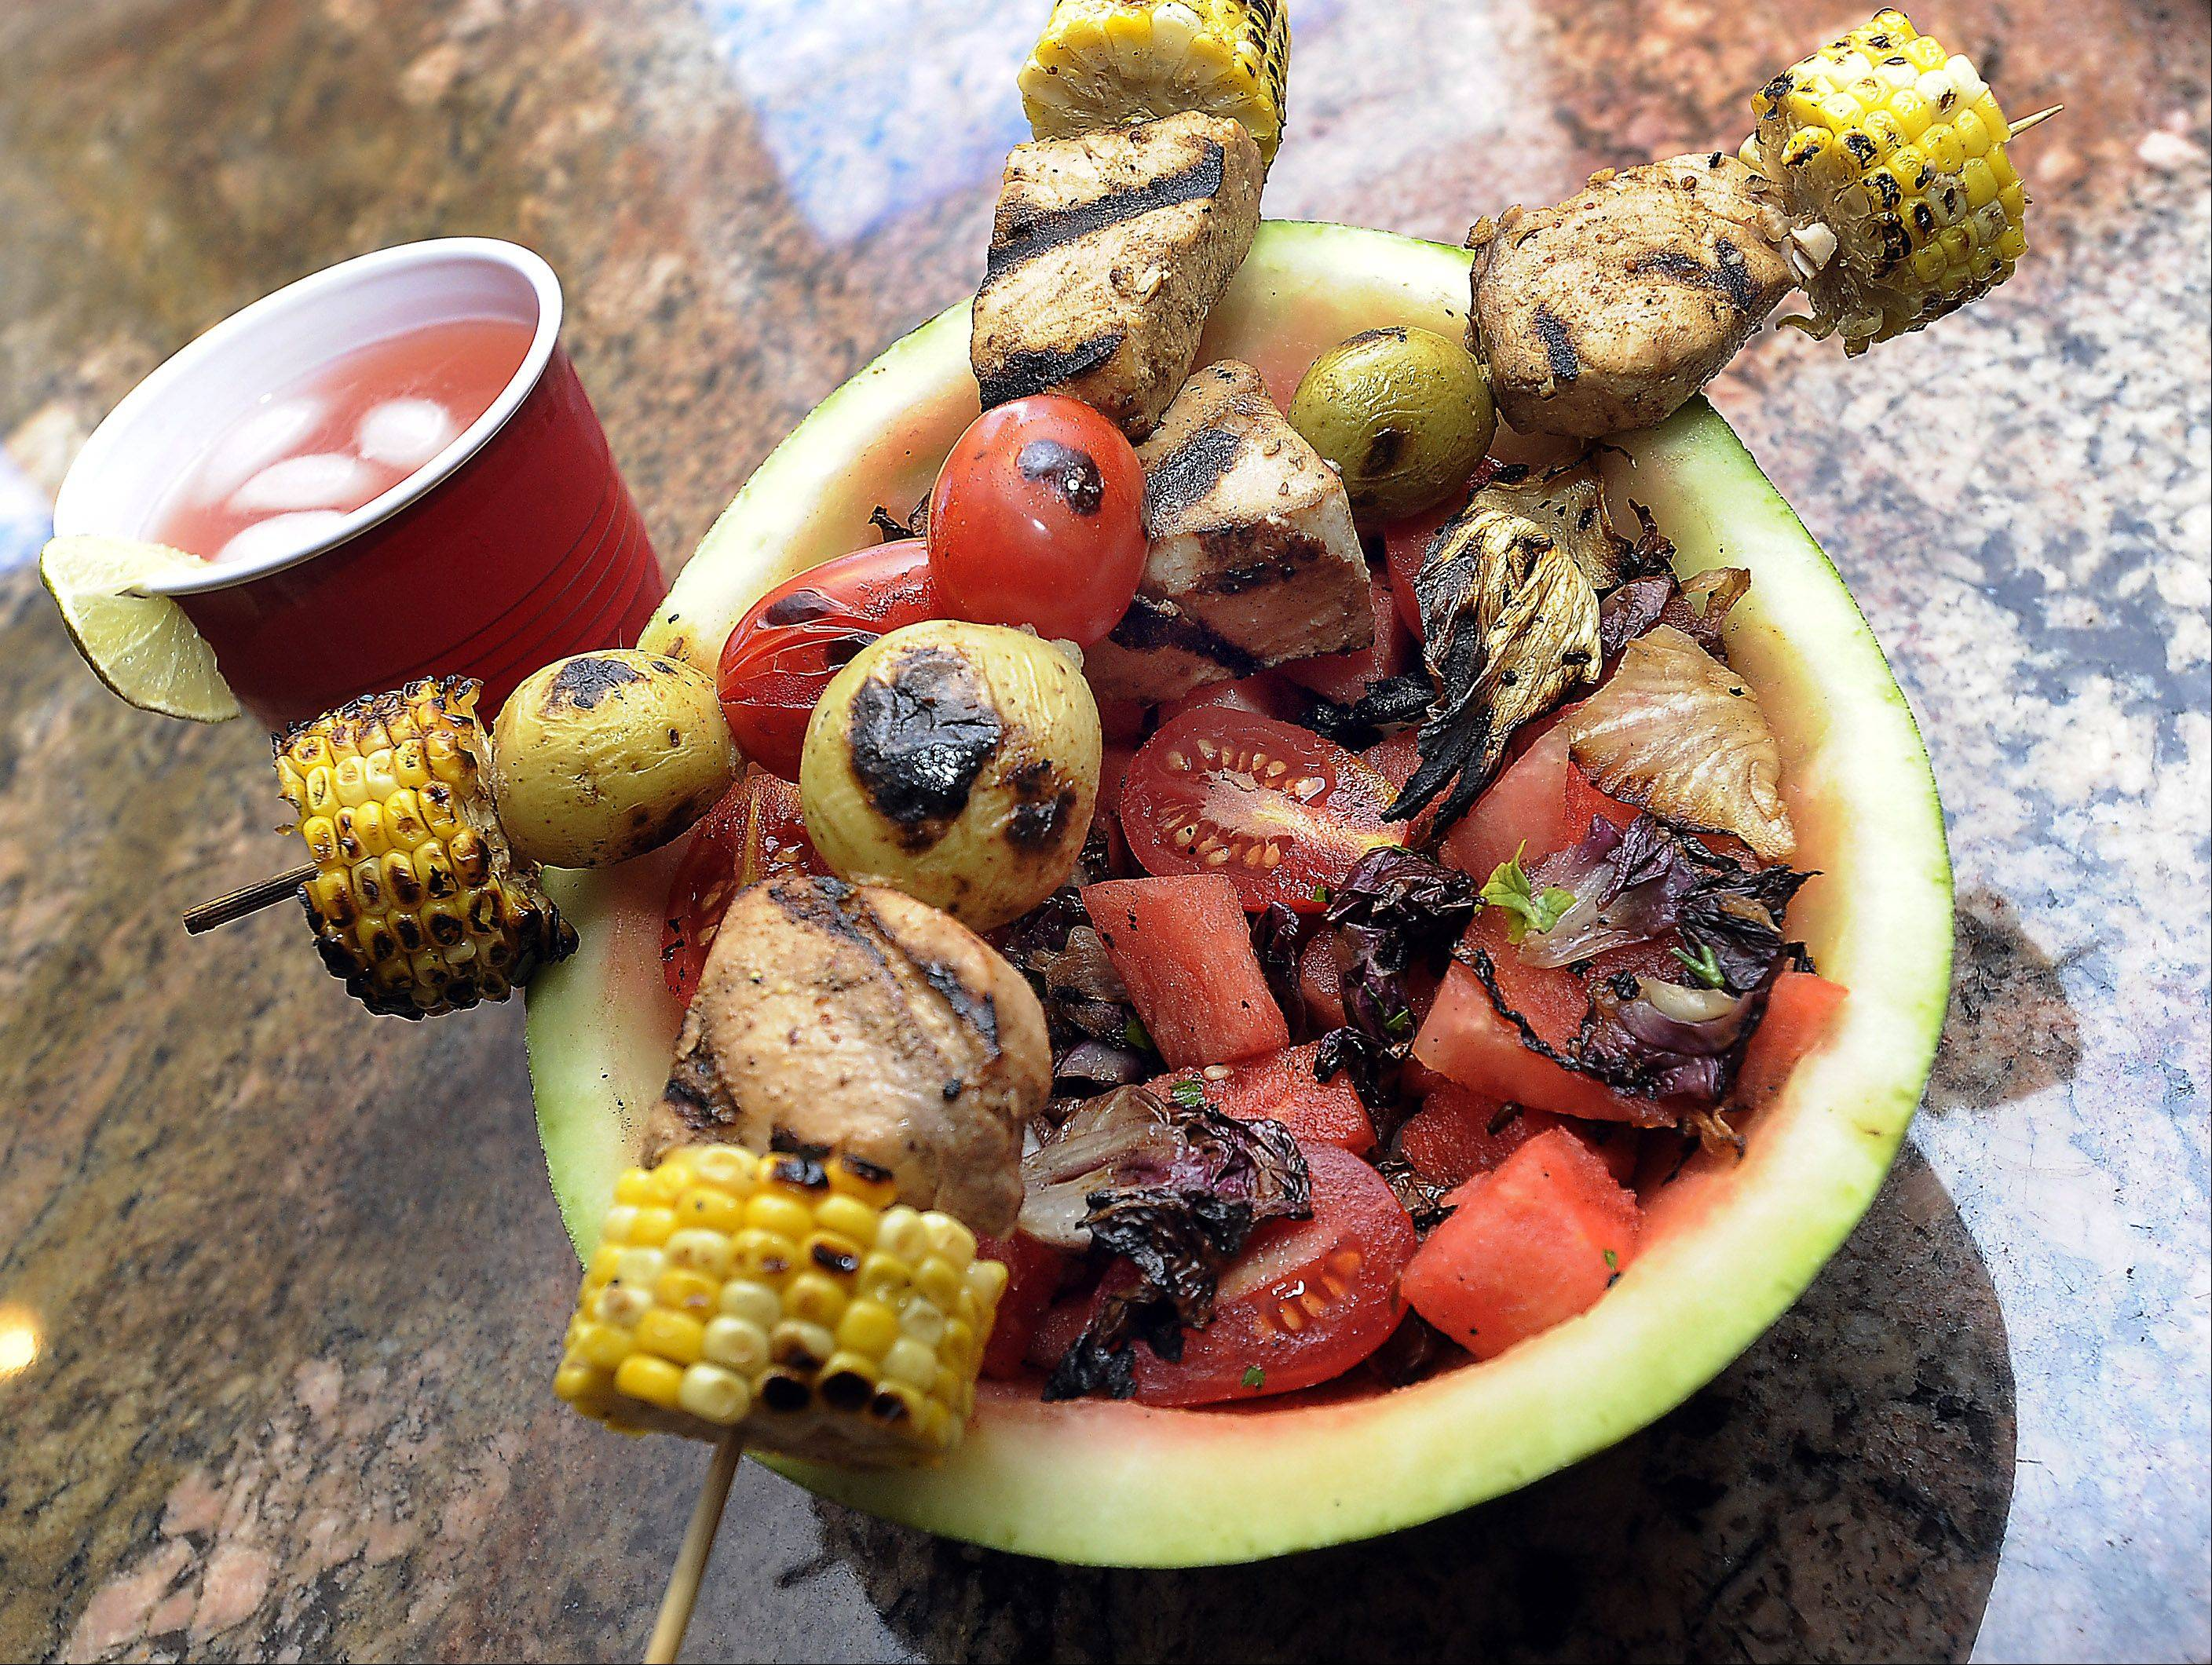 Tina Garrett serves her grilled radicchio salad and swordfish and corn kebabs in a watermelon bowl.